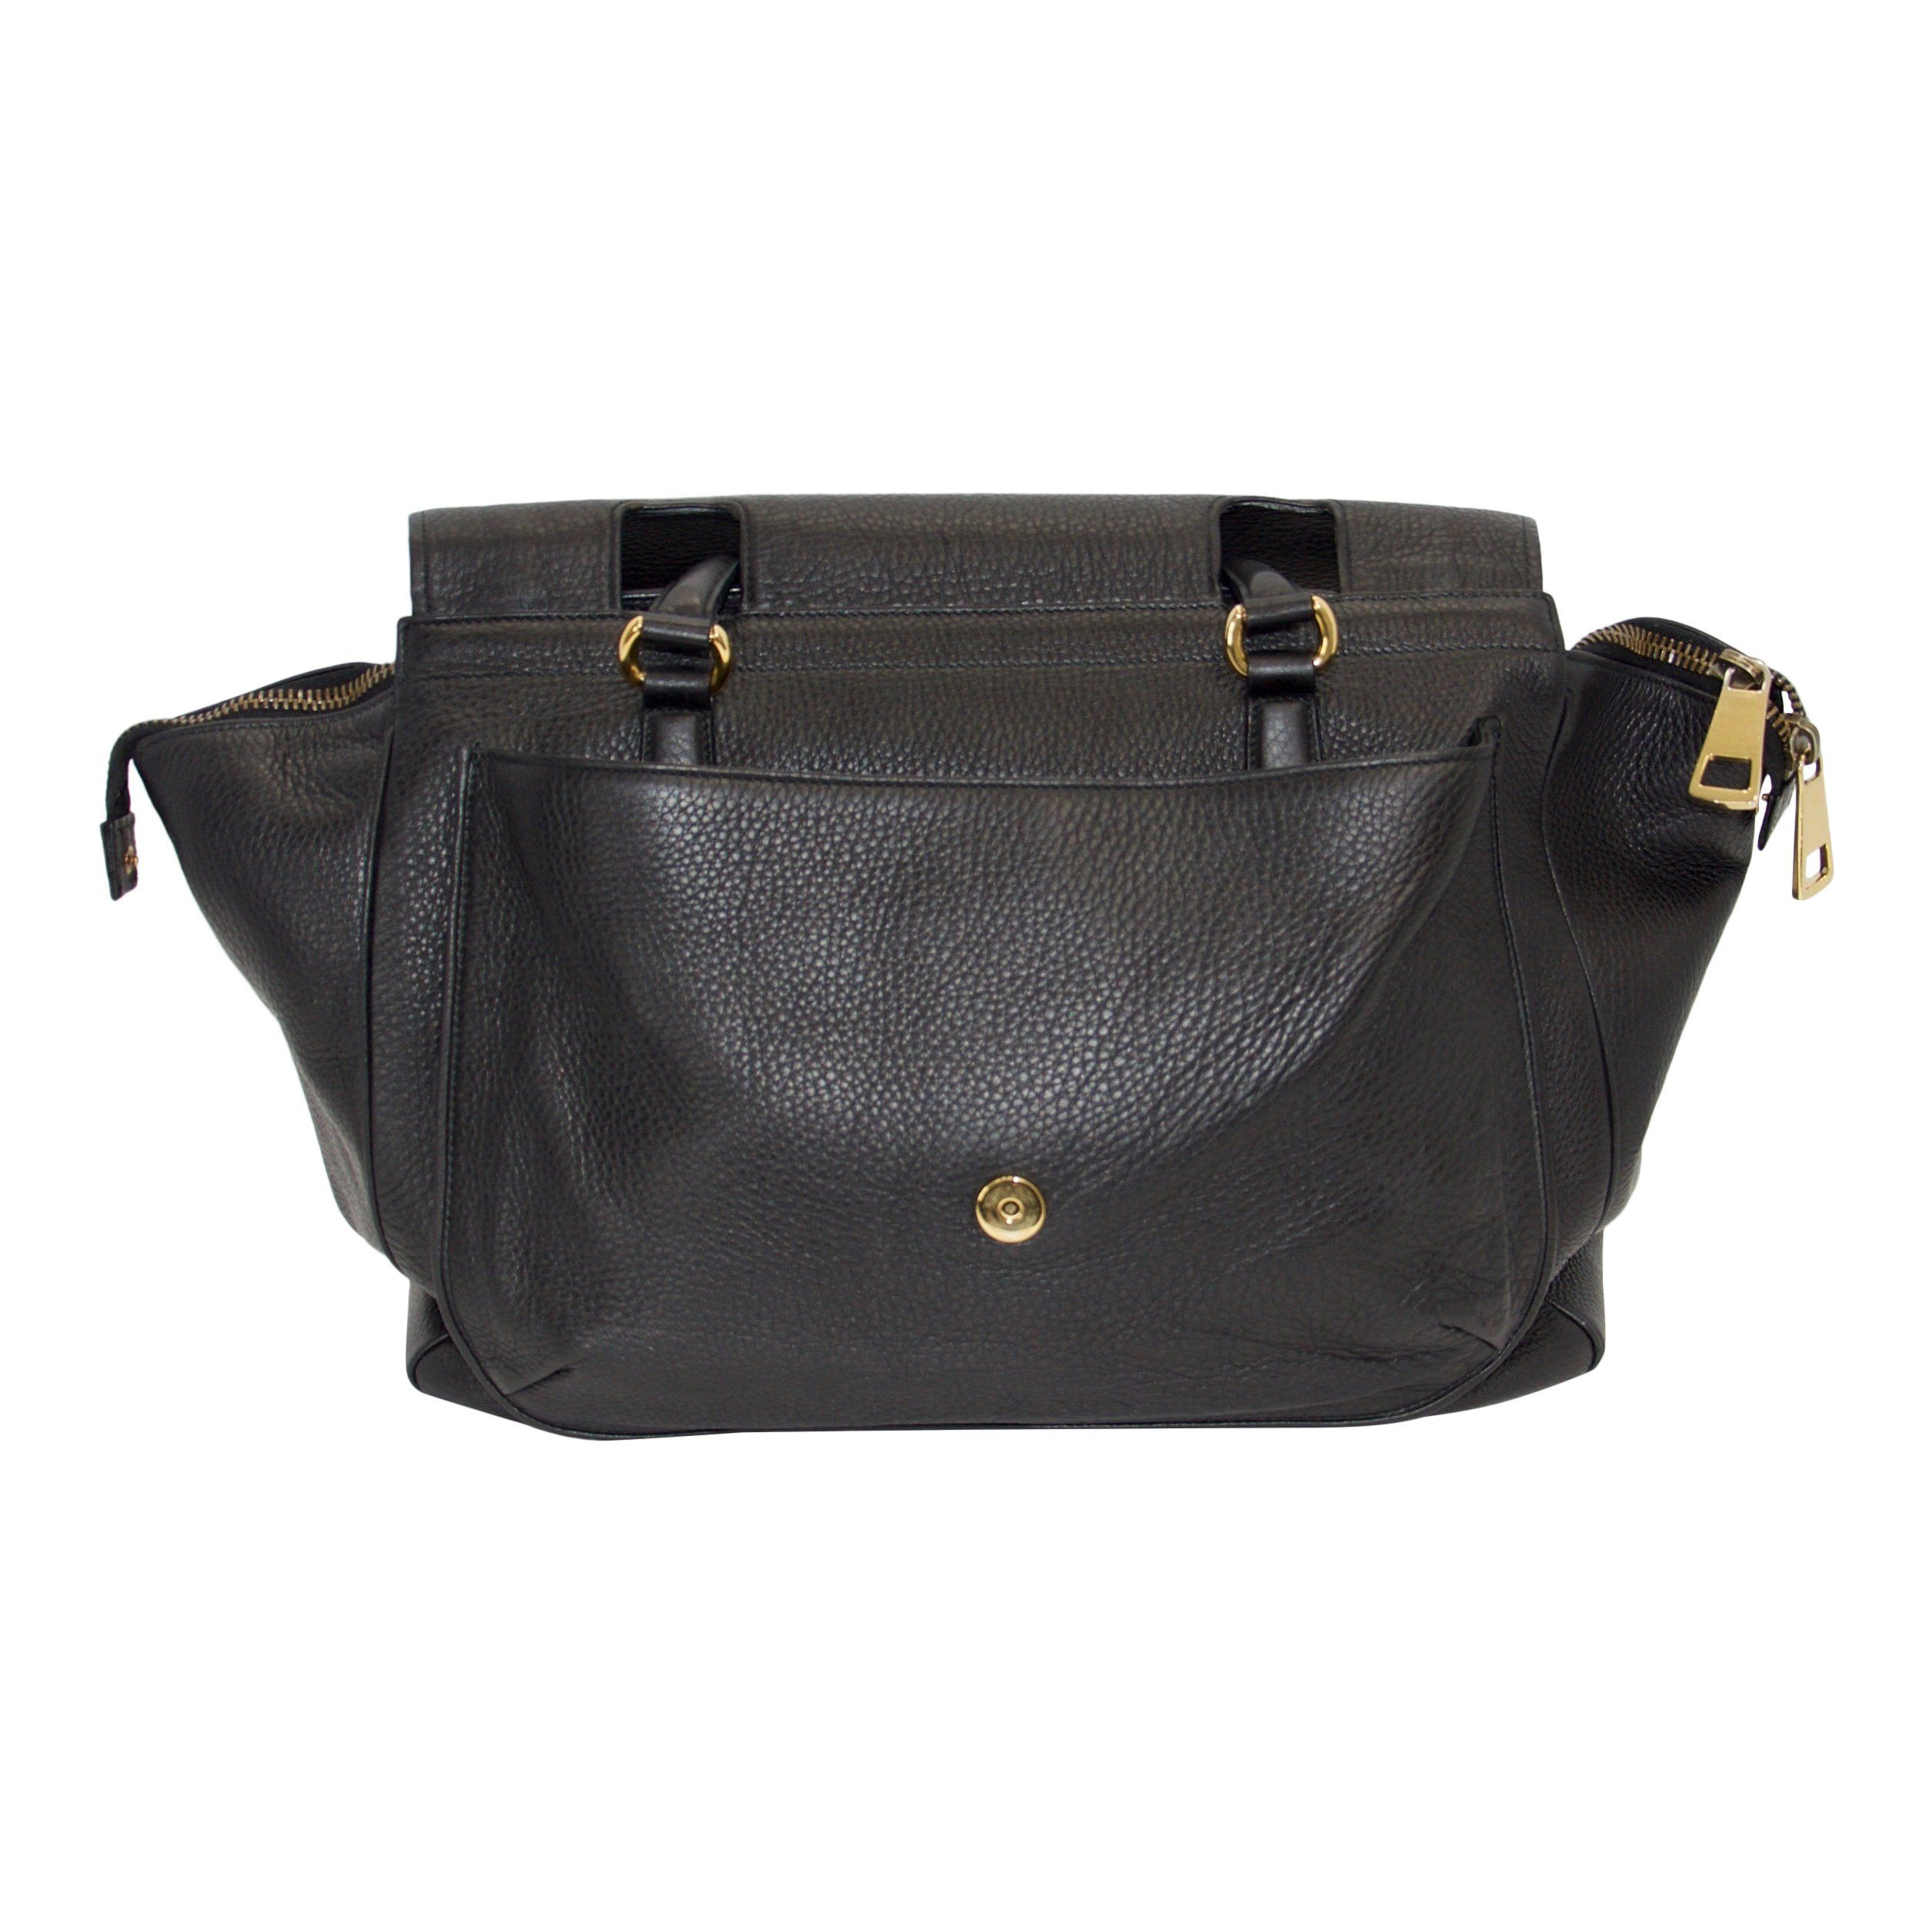 e1e842acf03 Gucci 1973 Black Leather Large Top Handle Bag - Oliver Jewellery